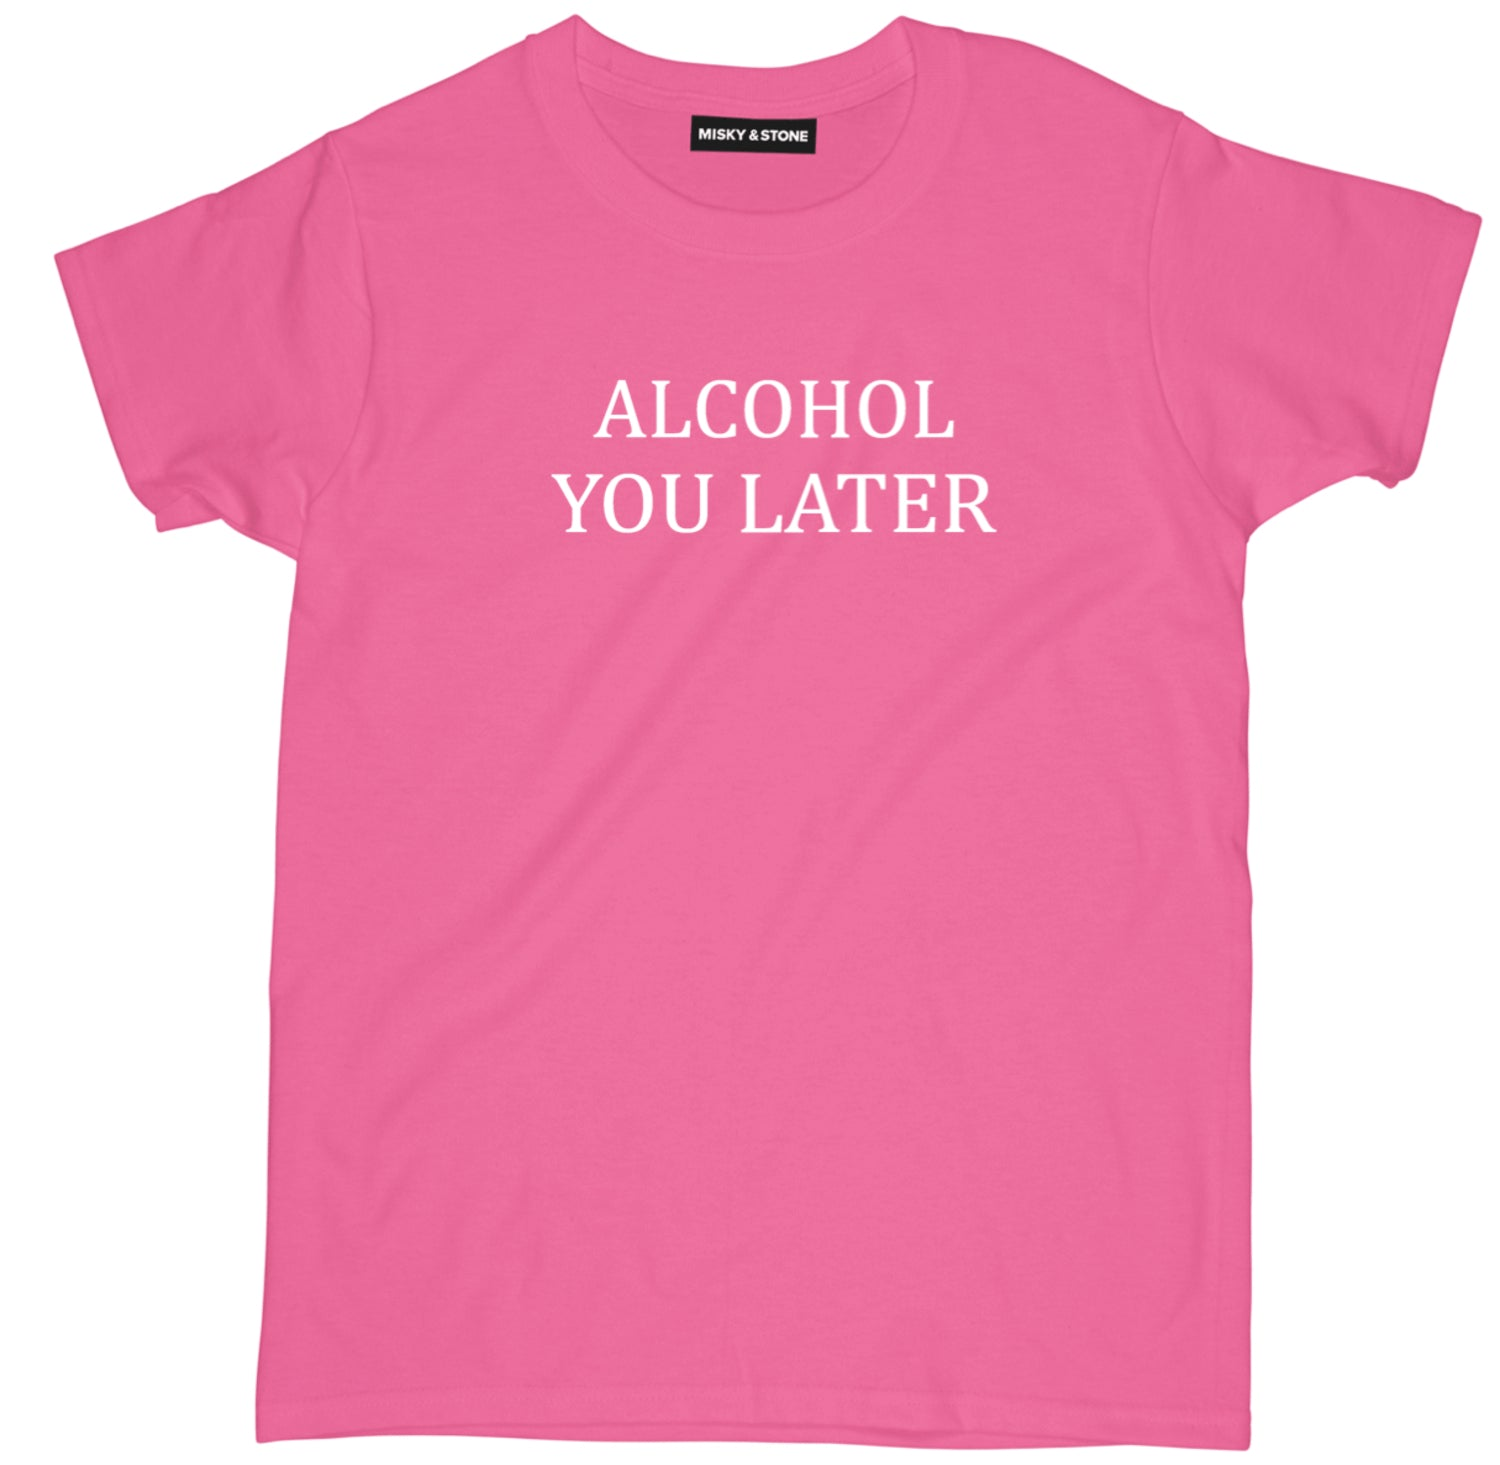 alcohol you later t shirt, alcohol you later shirt, drunk shirts, drunk t shirts, funny drunk shirts, funny beer shirts, funny beer t shirts, drinking shirts, alcohol shirts, alcohol t shirts, funny drinking shirts, beer shirts